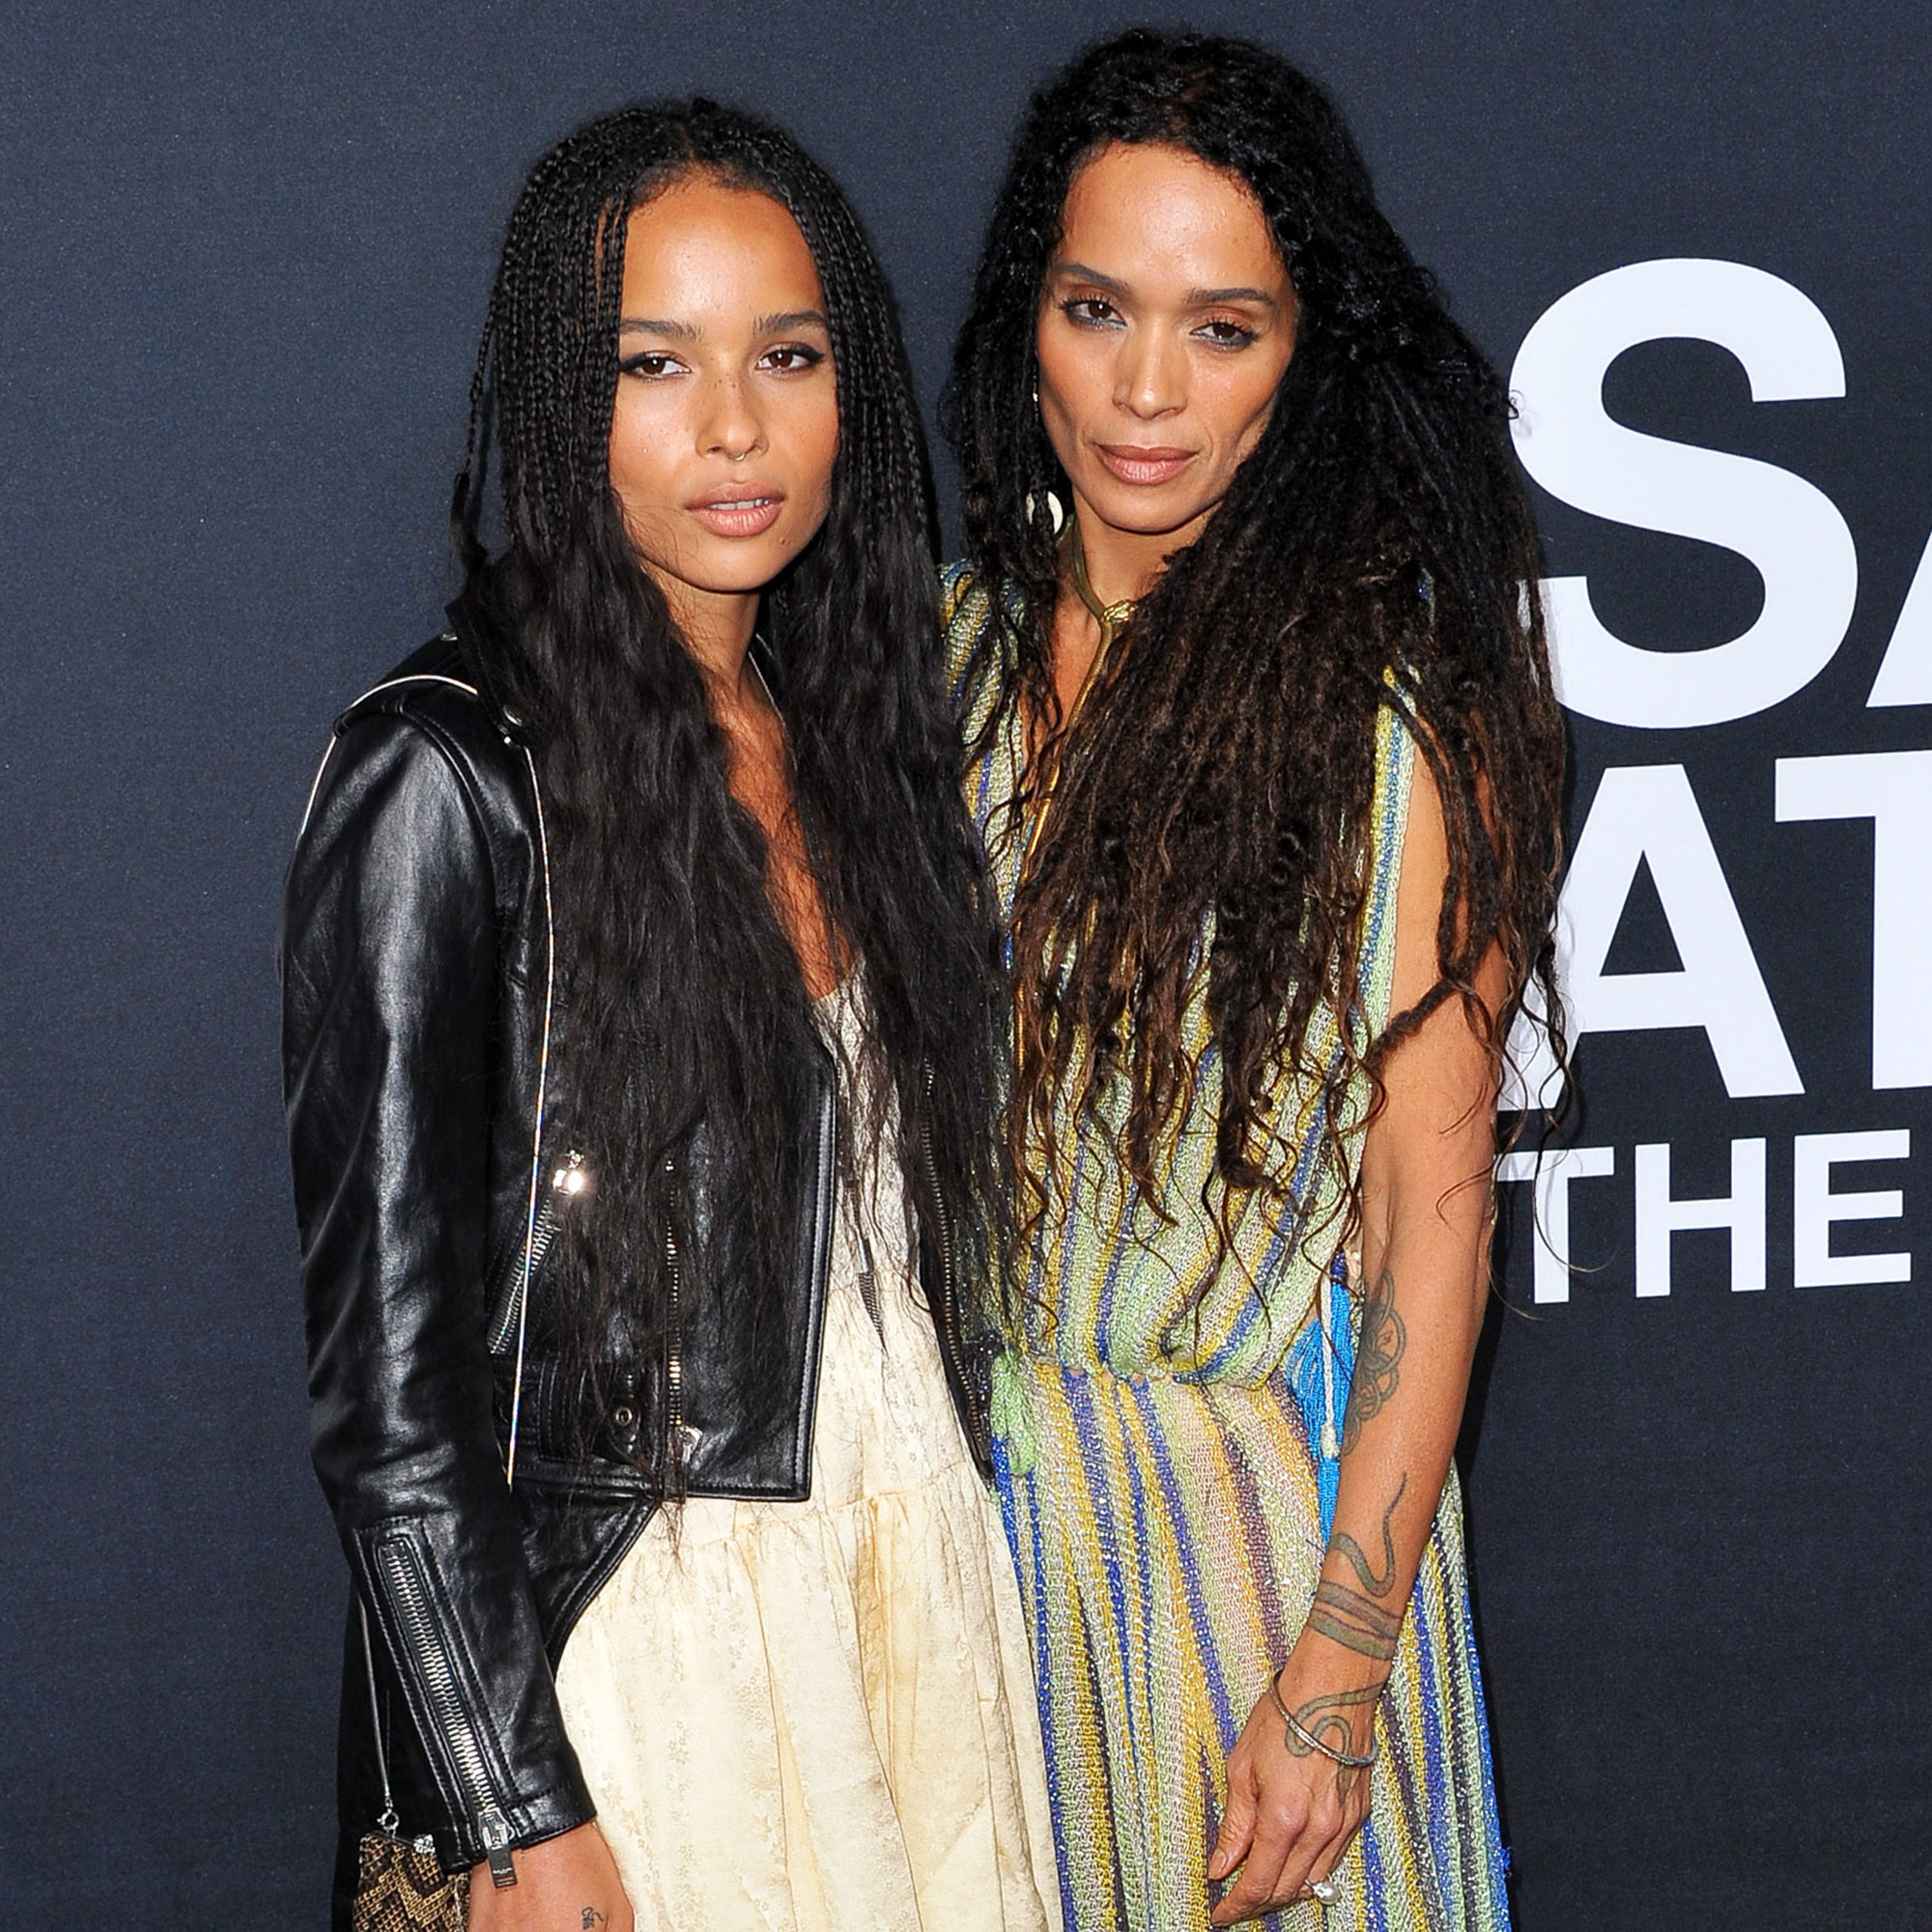 Zoe Kravitz And Mom Lisa Bonet Look Like Twins In New Photo